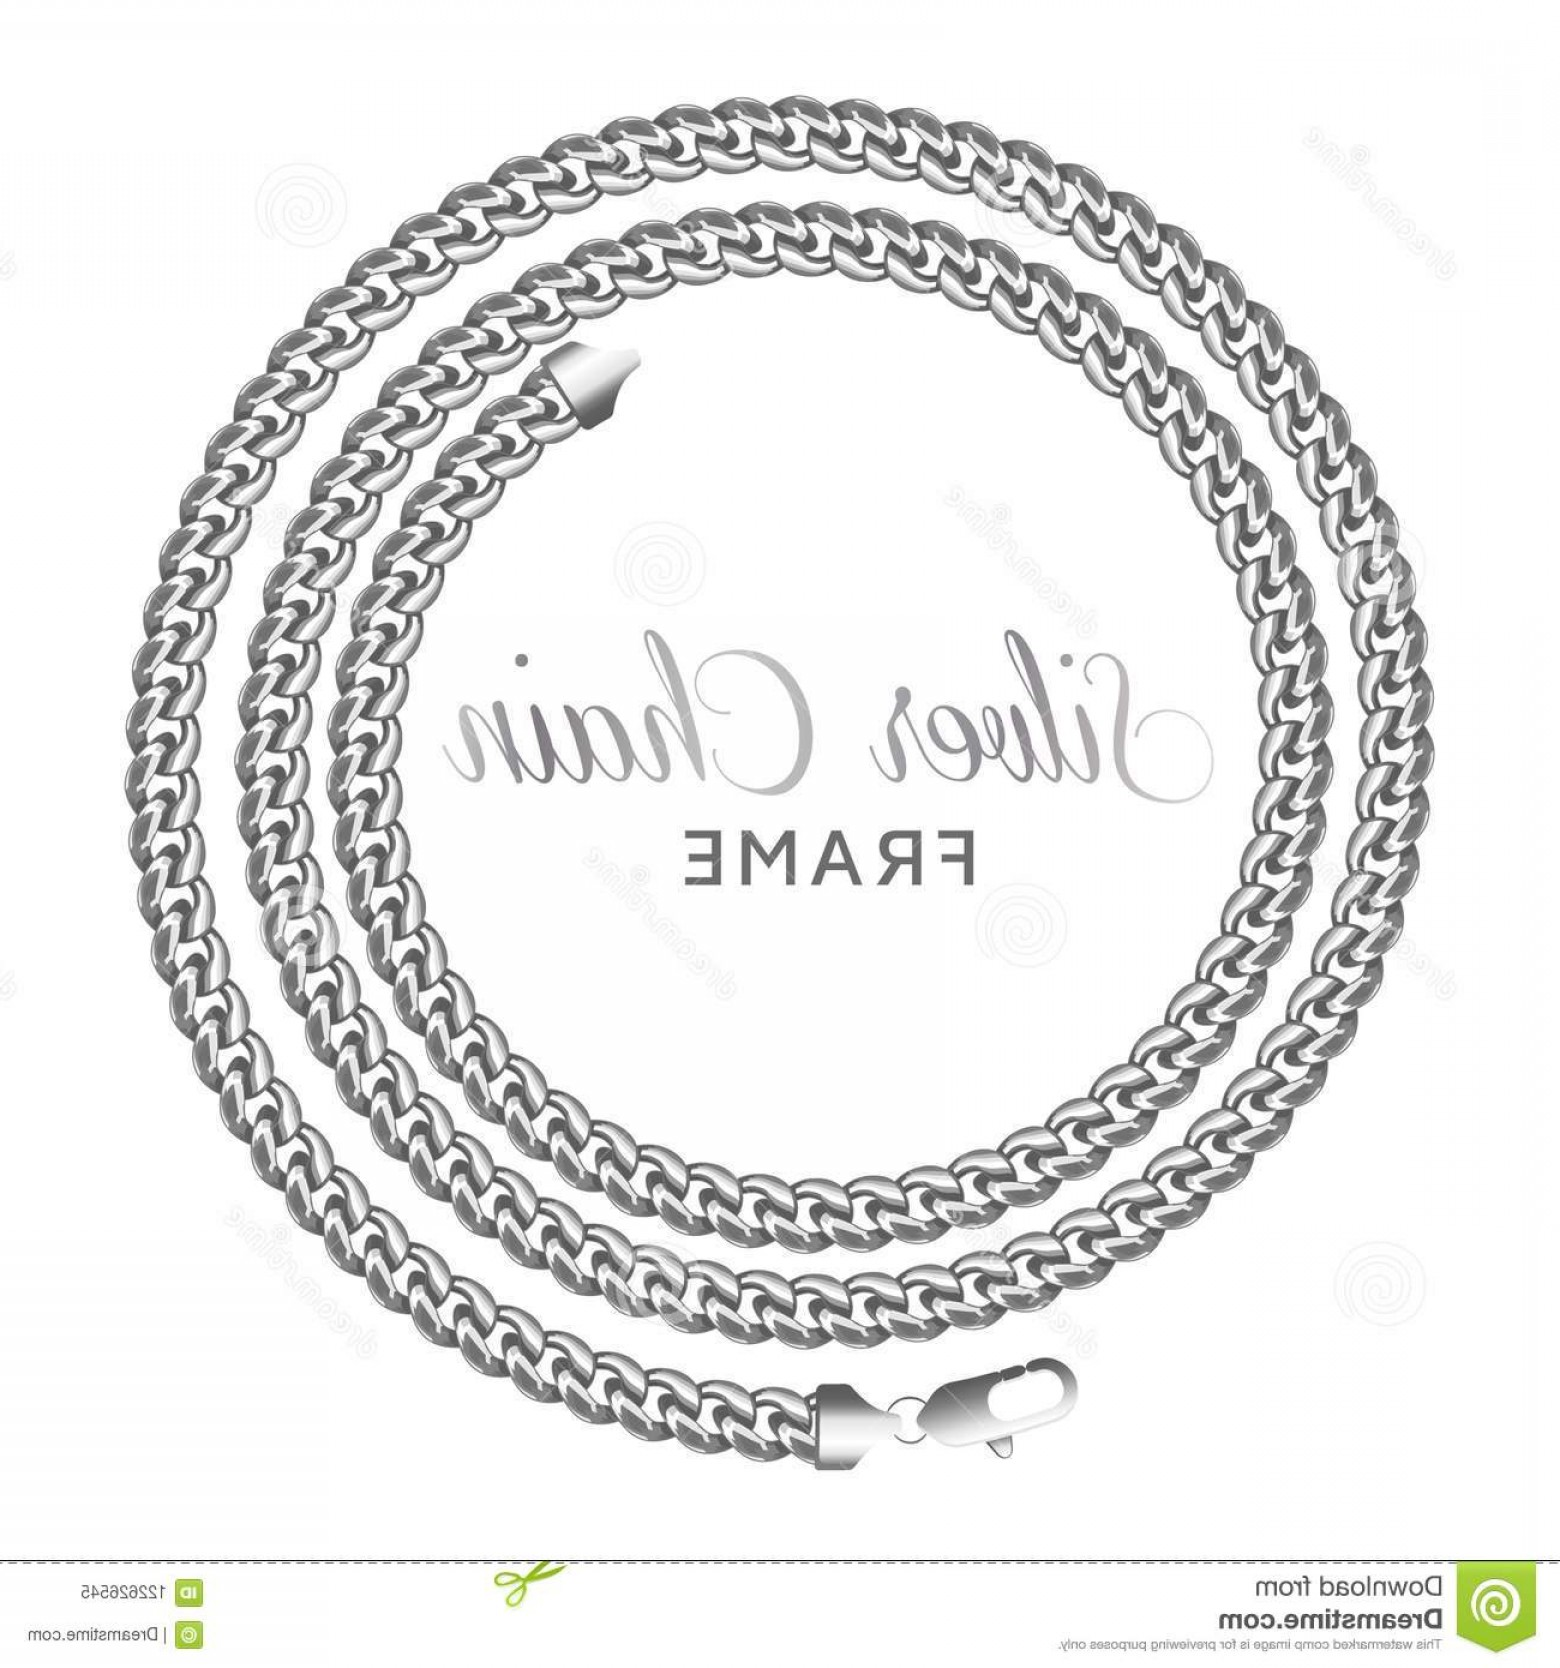 Wreath Circle Logo Vector: Silver Chain Round Spiral Border Frame Wreath Circle Shape Jewelry Design Text Frame Realistic Vector Illustration Isolated Image